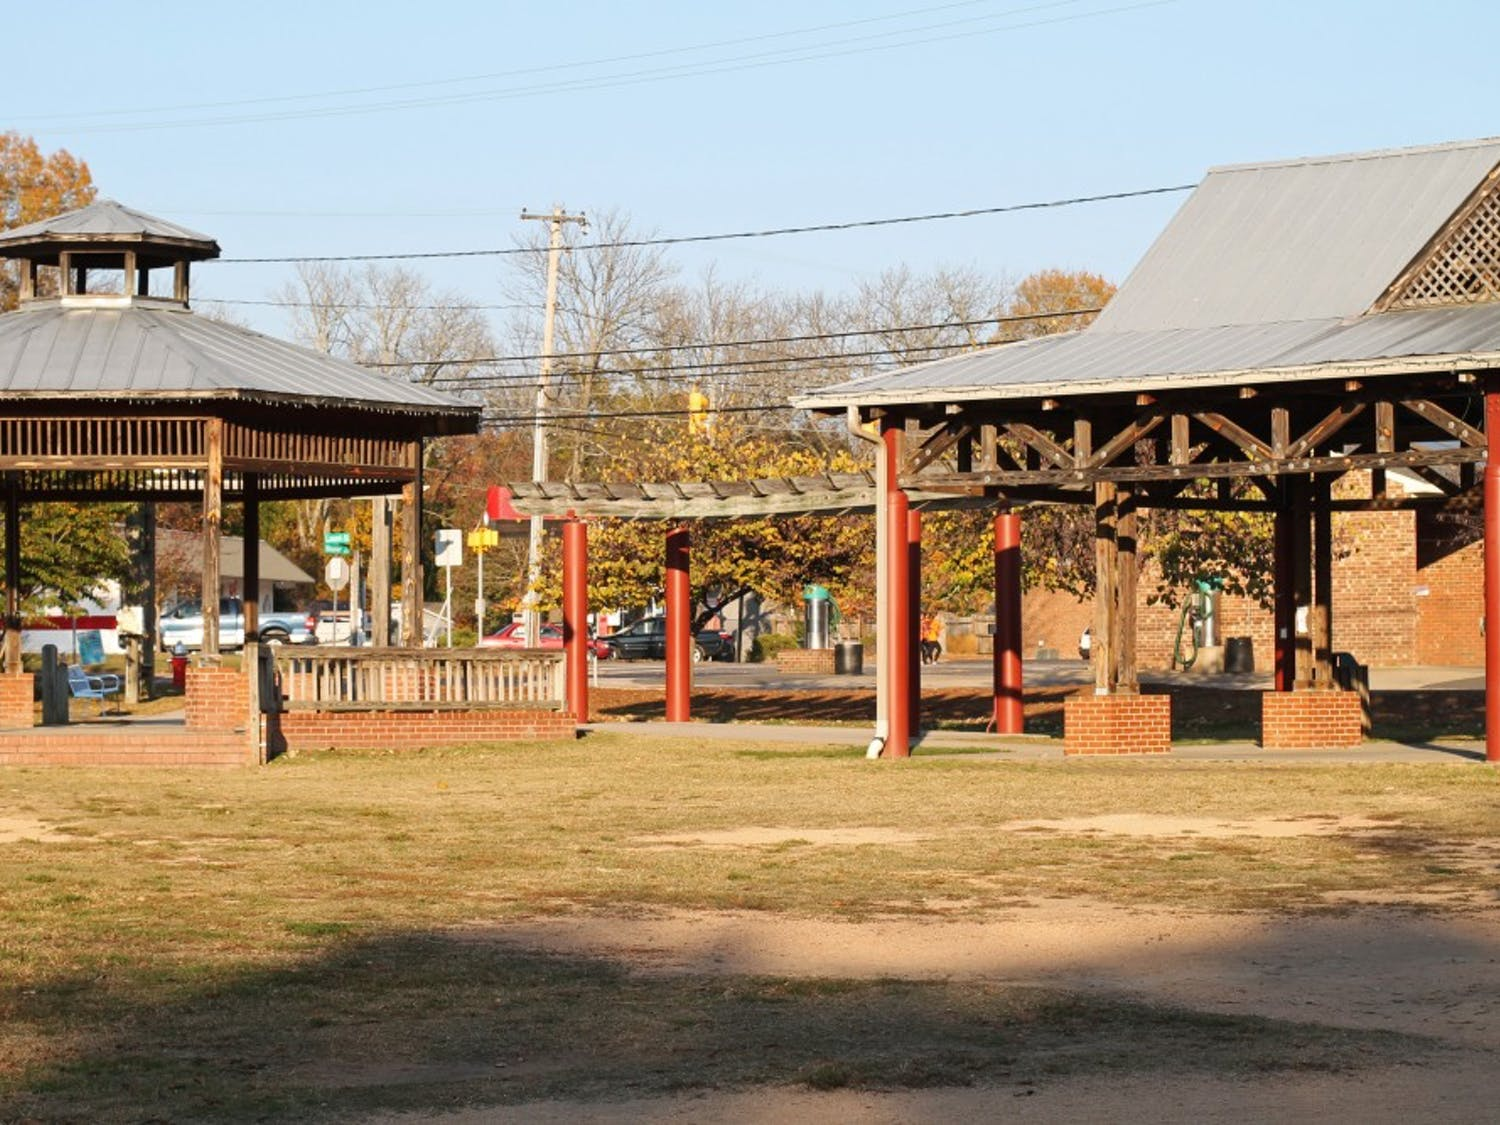 The Town of Carrboro Board of Alderman approved plans to redesign the Carrboro Town Commons to make improvements.